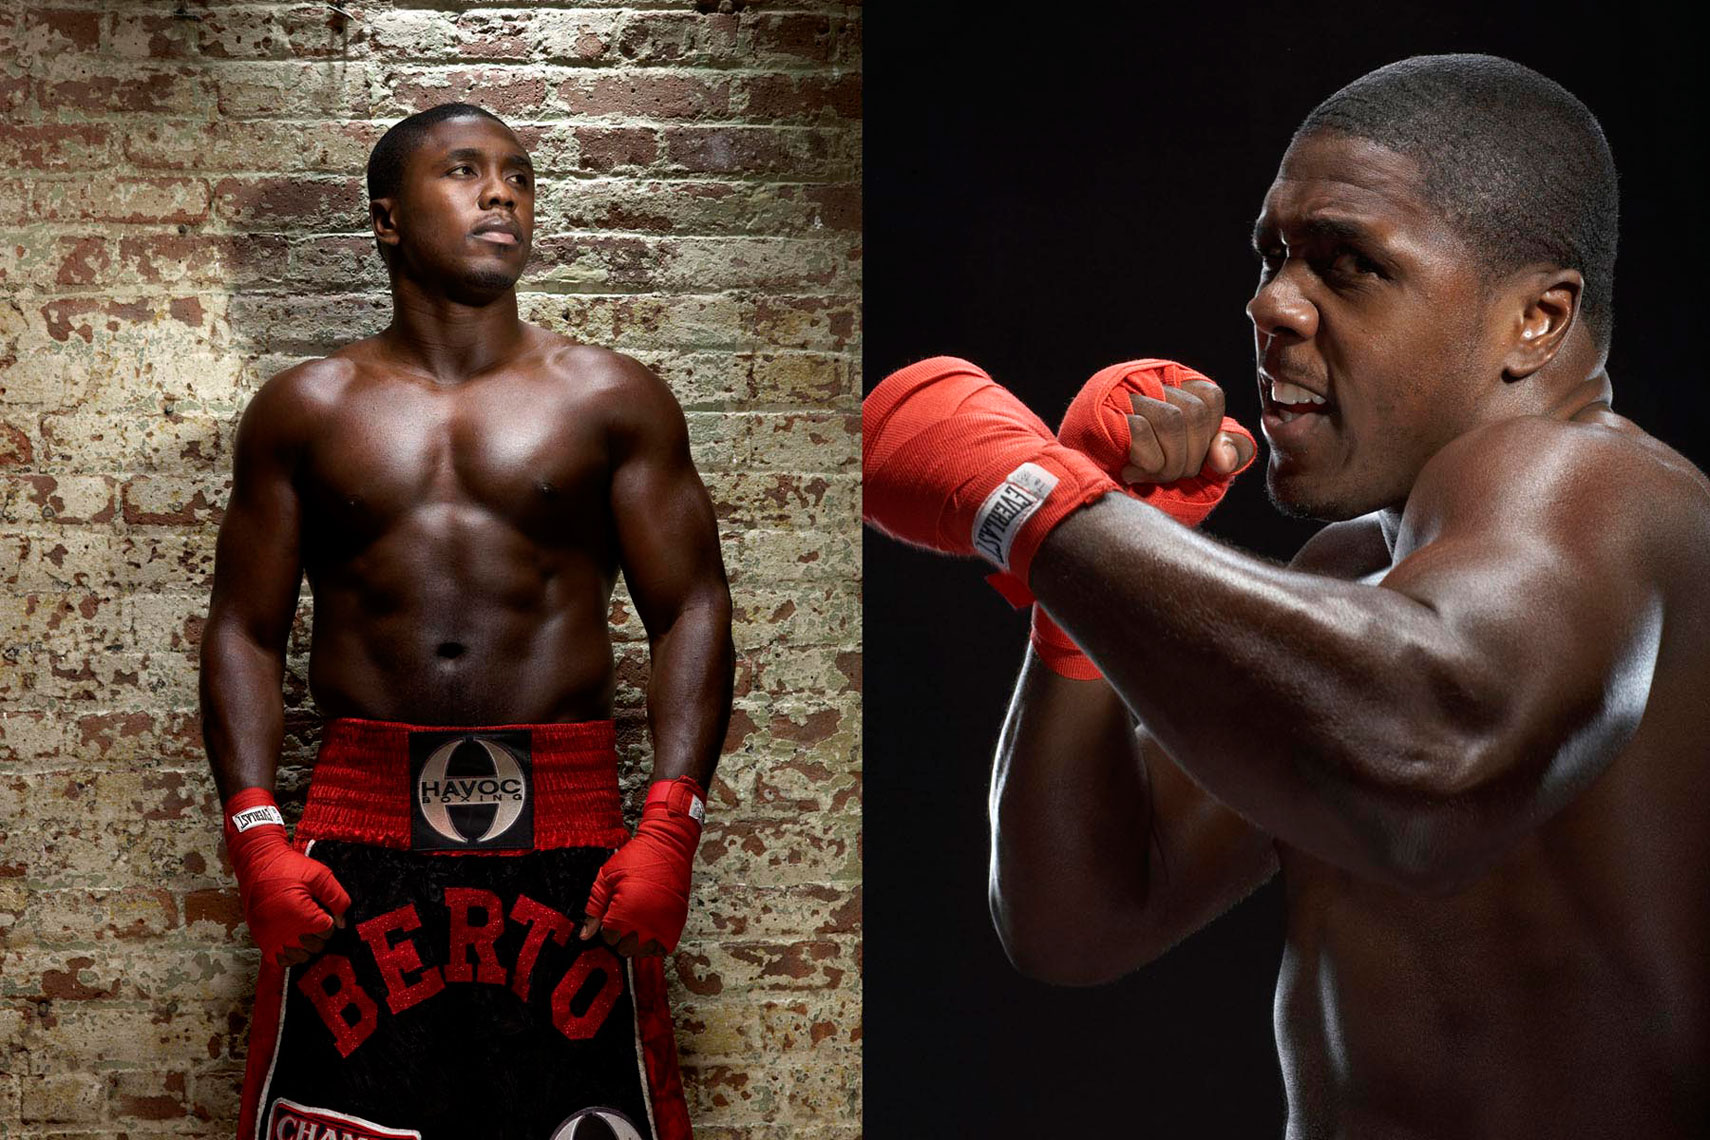 Andre Berto portrait for HBO boxing photo by Monte Isom